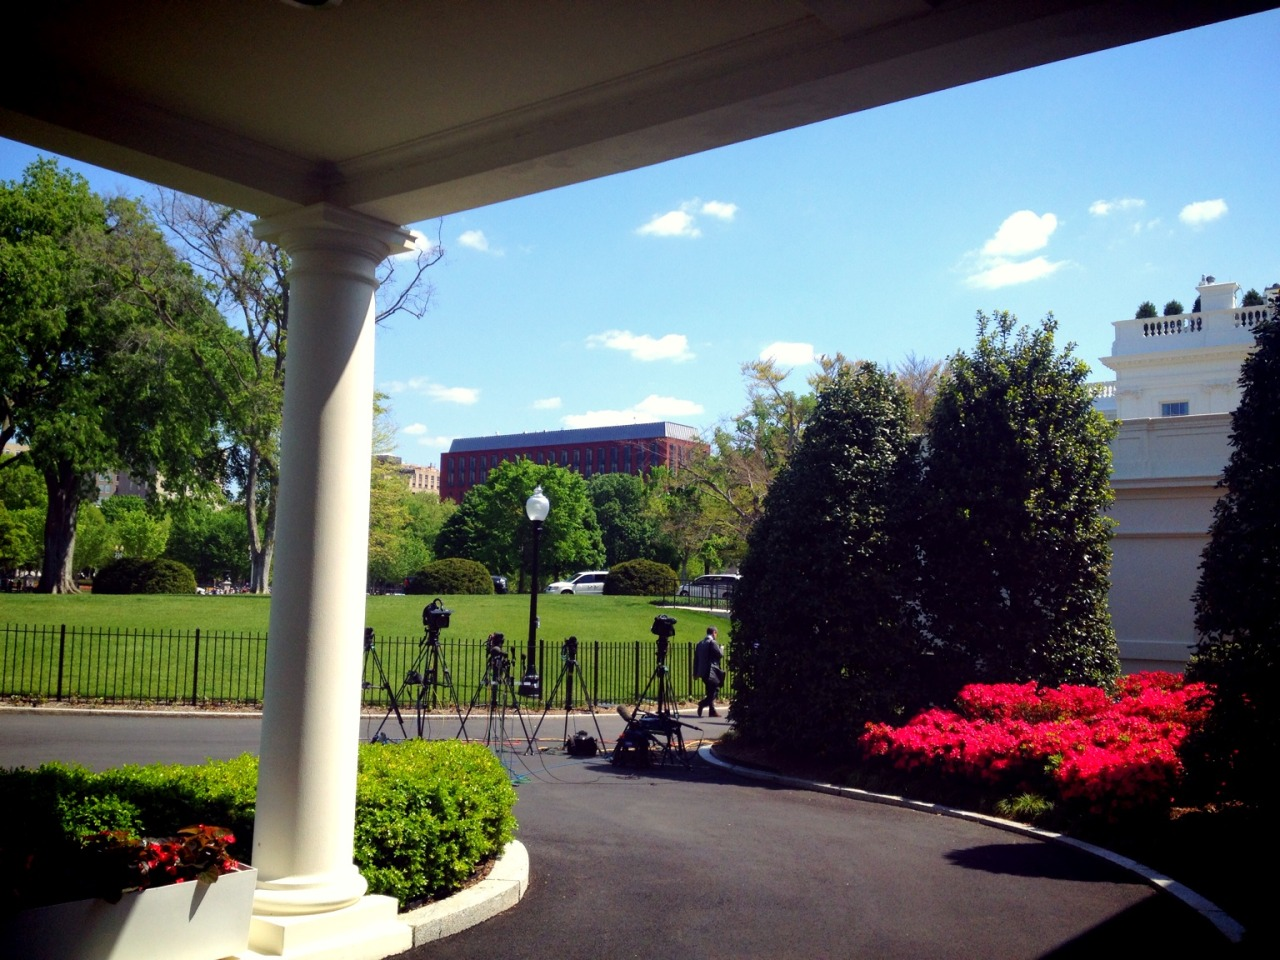 Heading into the West Wing at The White House – View on Path.